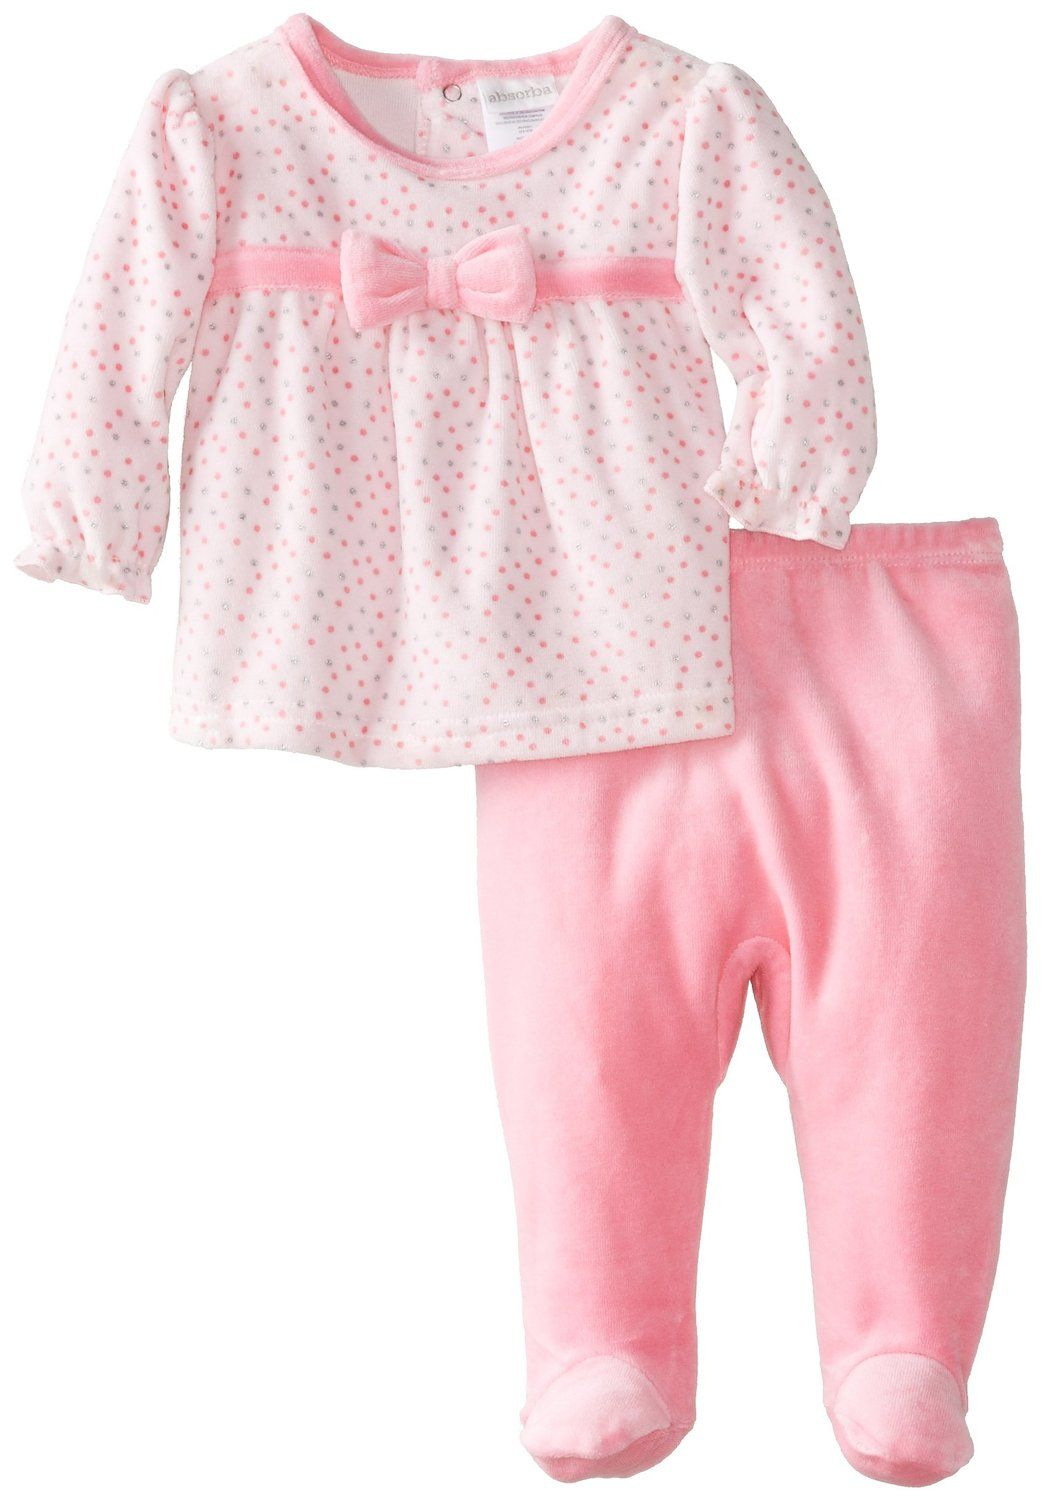 49446842aaf9 Amazon.com  ABSORBA Baby-Girls Newborn G Velour Bow Multi Dot Footed ...